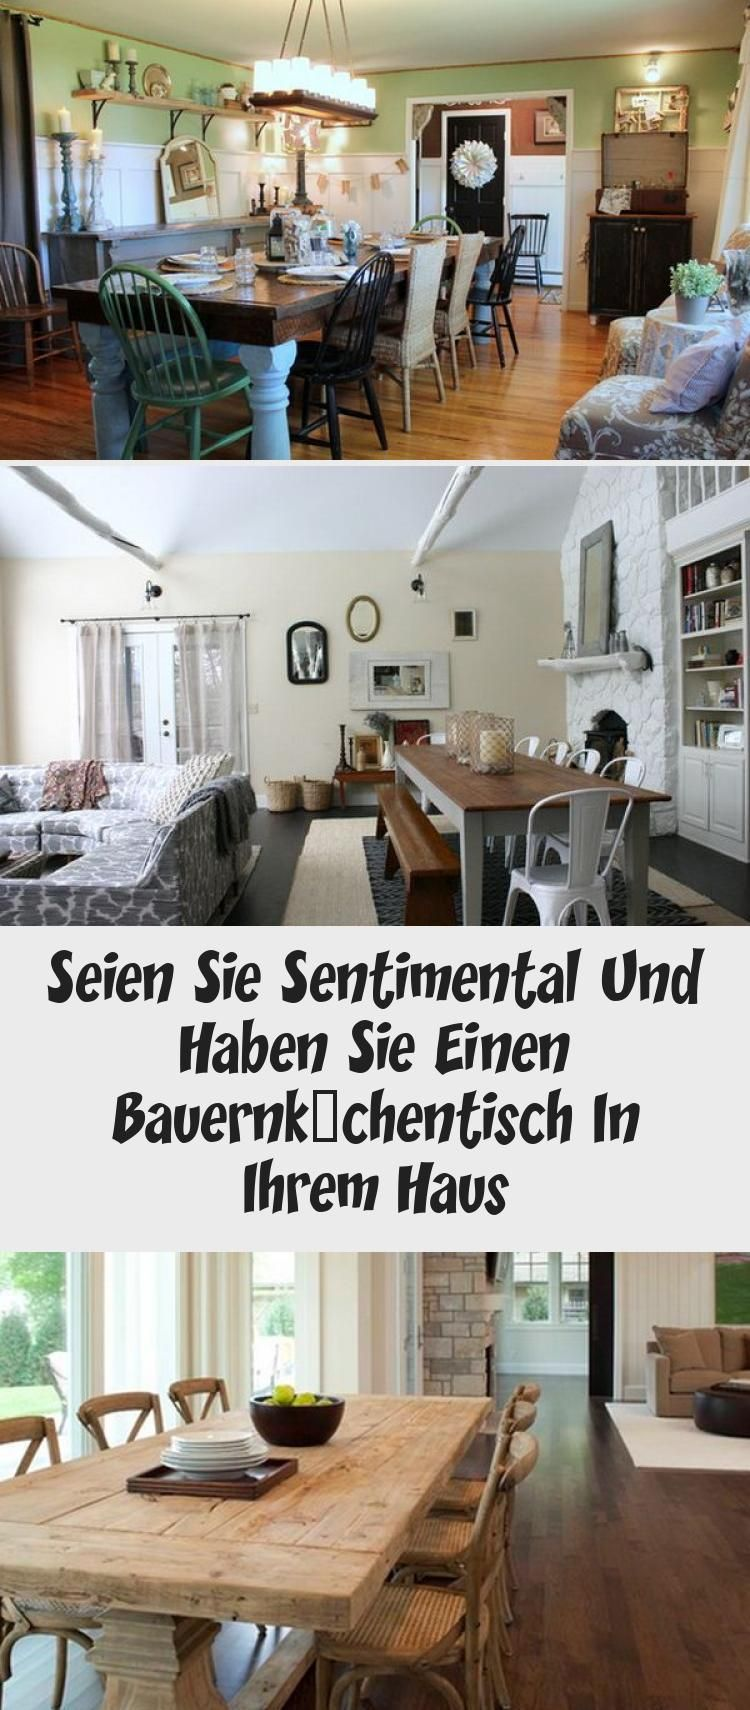 Küche Dekorieren Pinterest Seien Sie Sentimental Und Haben Sie Einen Bauernküchentisch In Ihrem Haus # Pinterest #designs #esszimmer #möbel #küche #bauern… | Home Decor, Decor, Entryway Tables